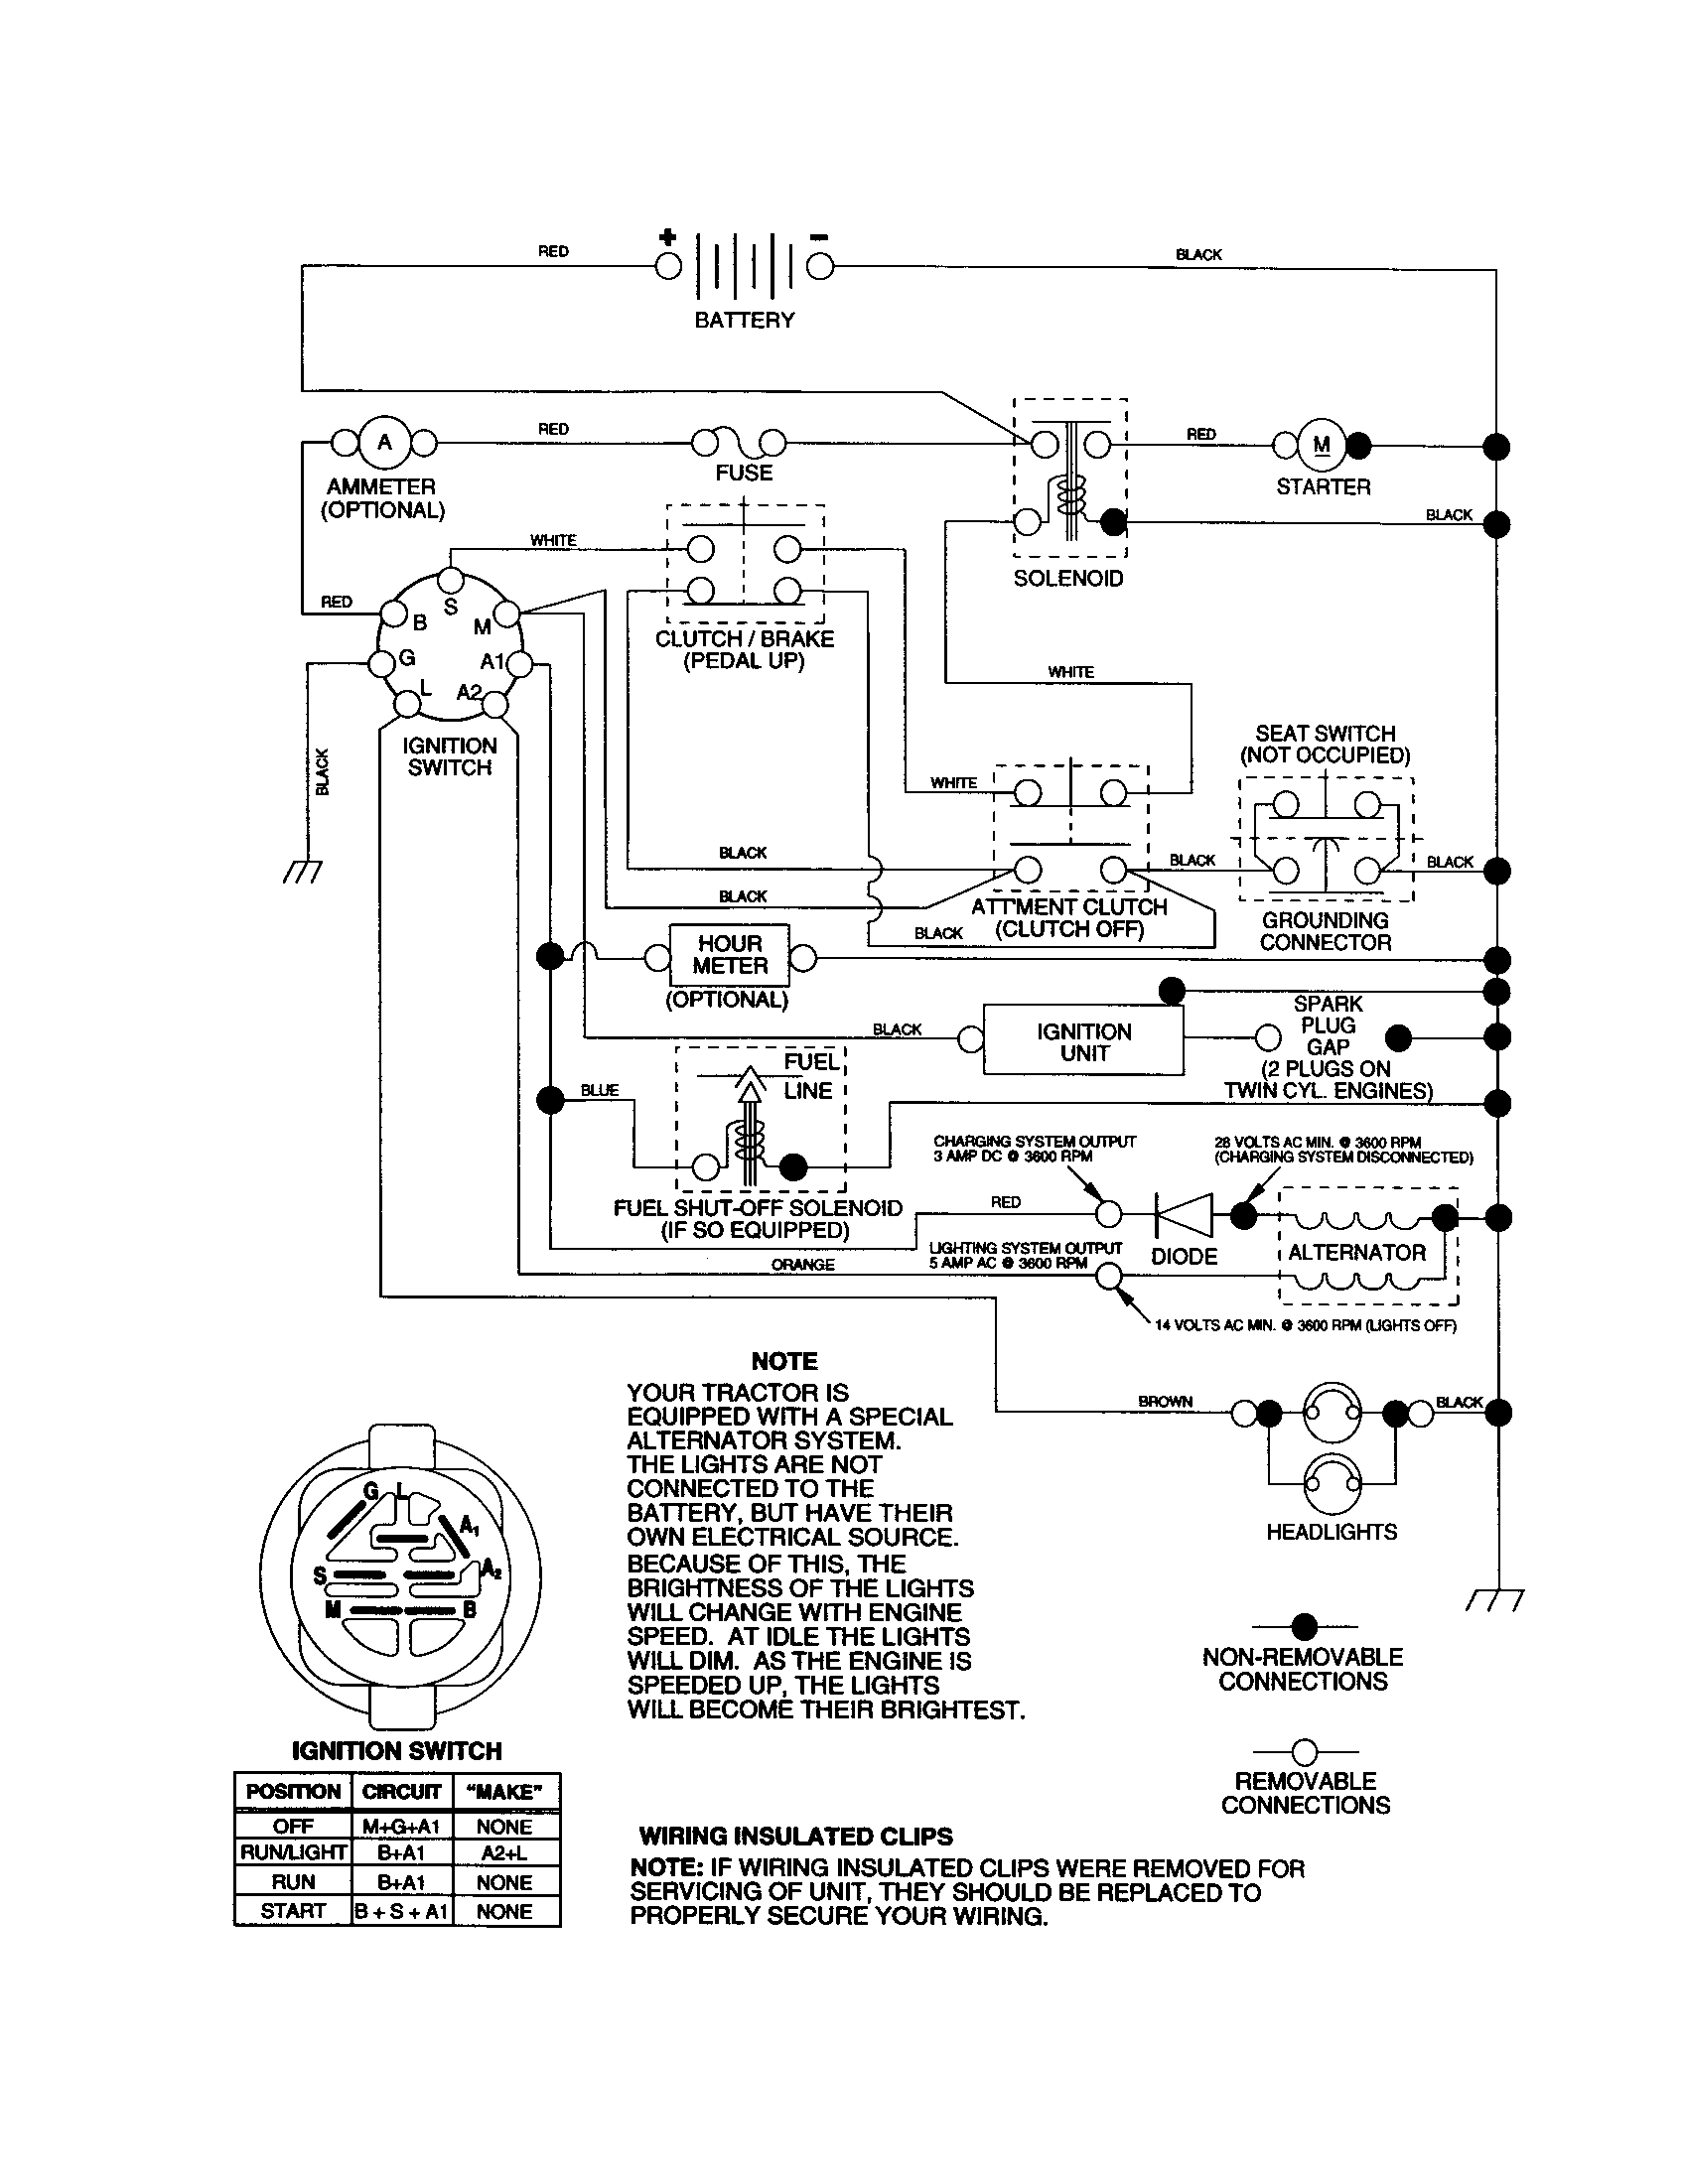 [DIAGRAM] Basic Wiring Diagram For All Garden Tractors